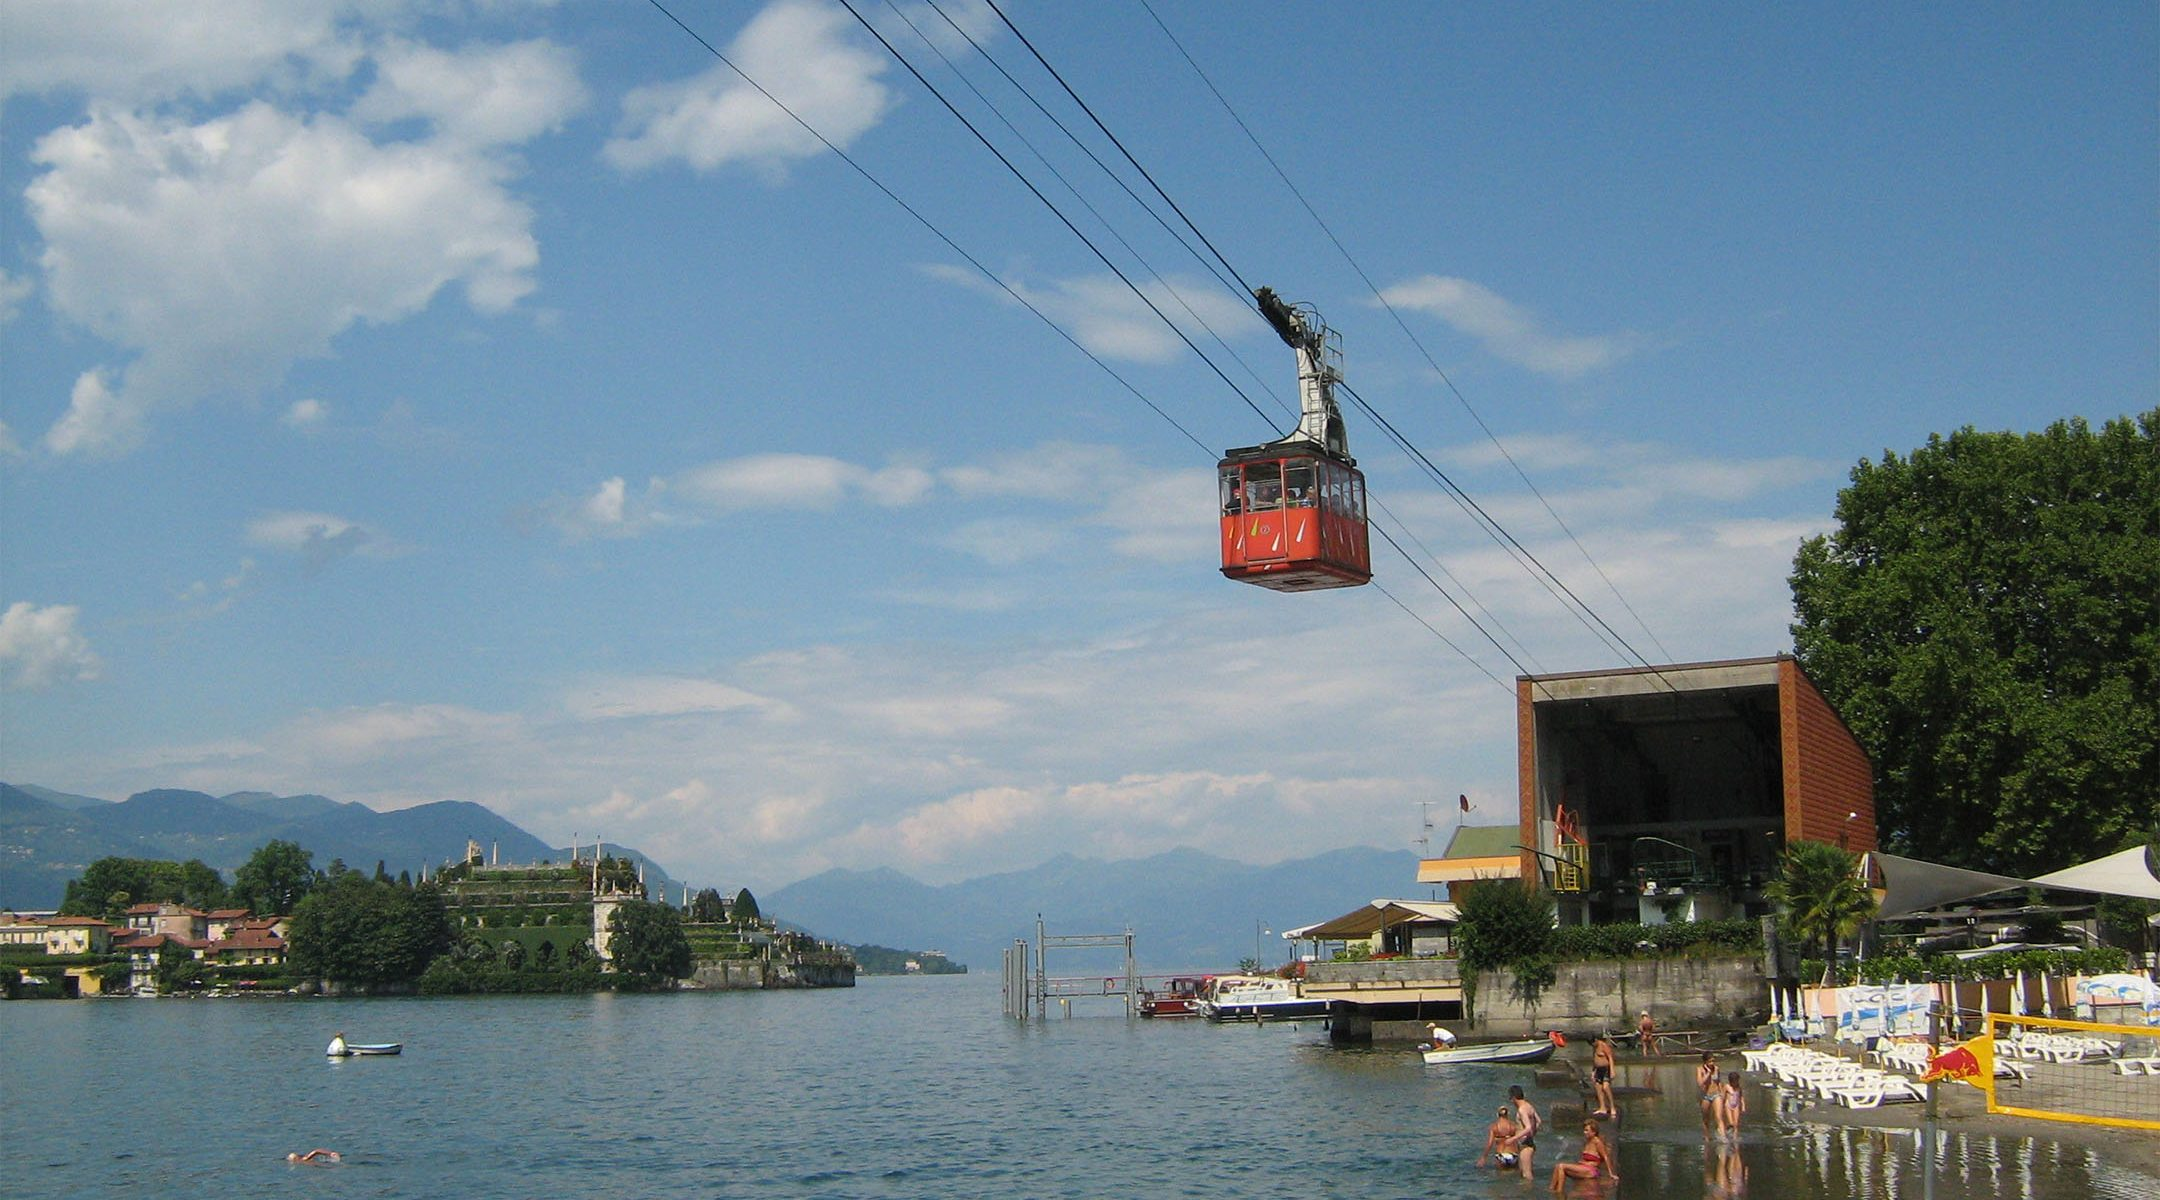 Passengers traveling on the Stresa-Mottarone cable car in July 2009. (Wikimedia Commons)